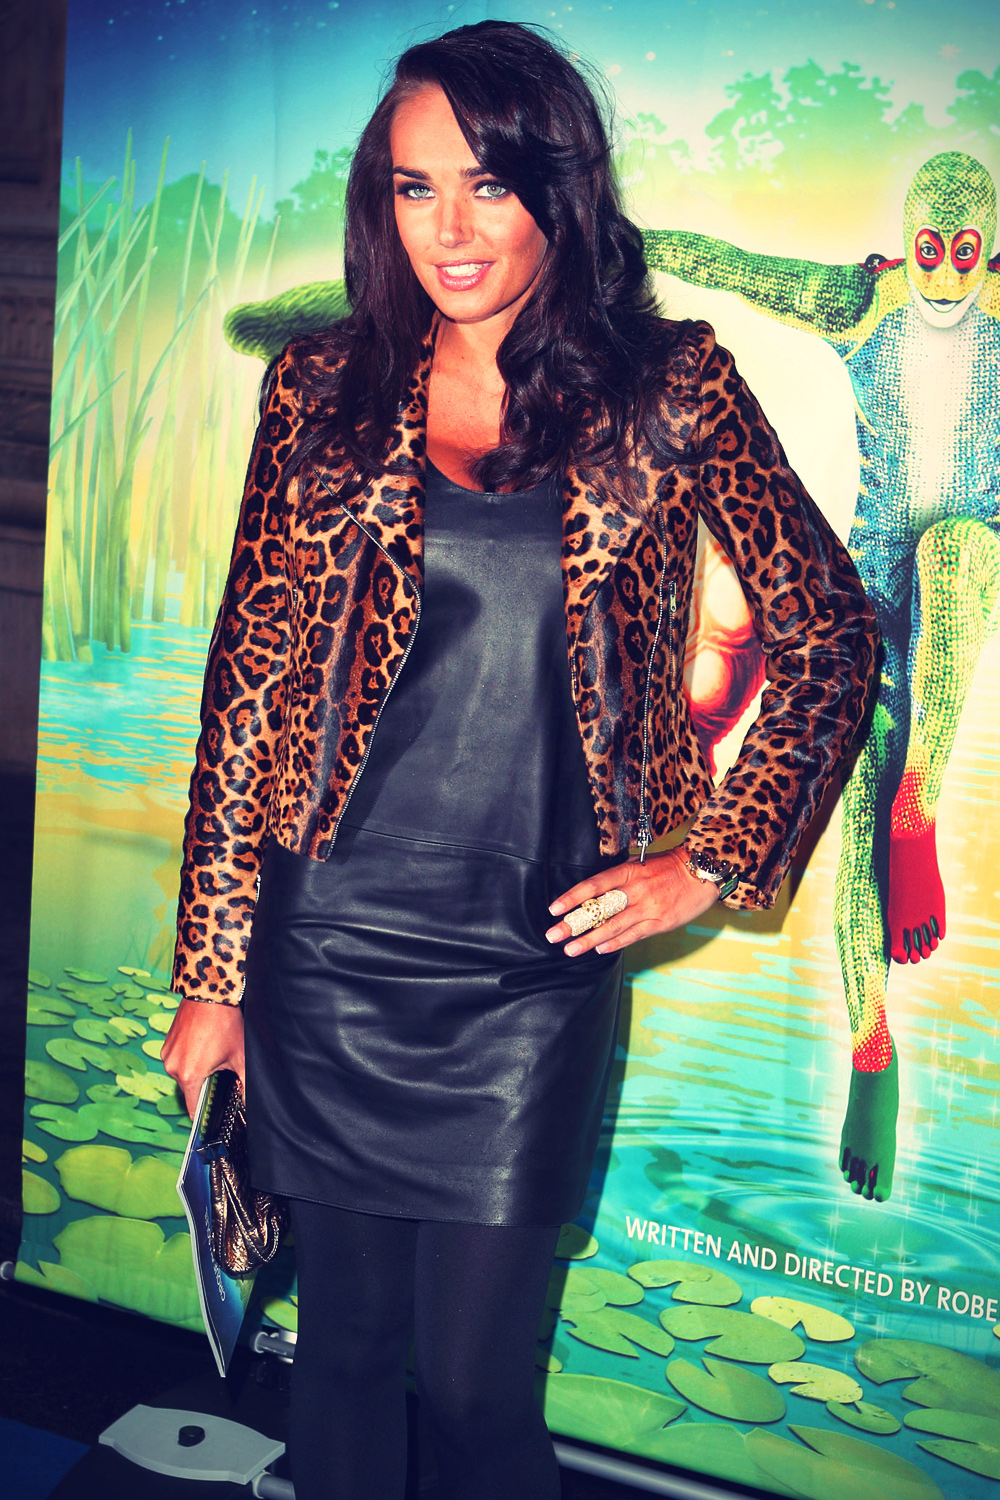 Tamara ecclestone leather pants tamara ecclestone leather dress tamara - Tamara Ecclestone At Cirque Du Soleil Uk Premiere